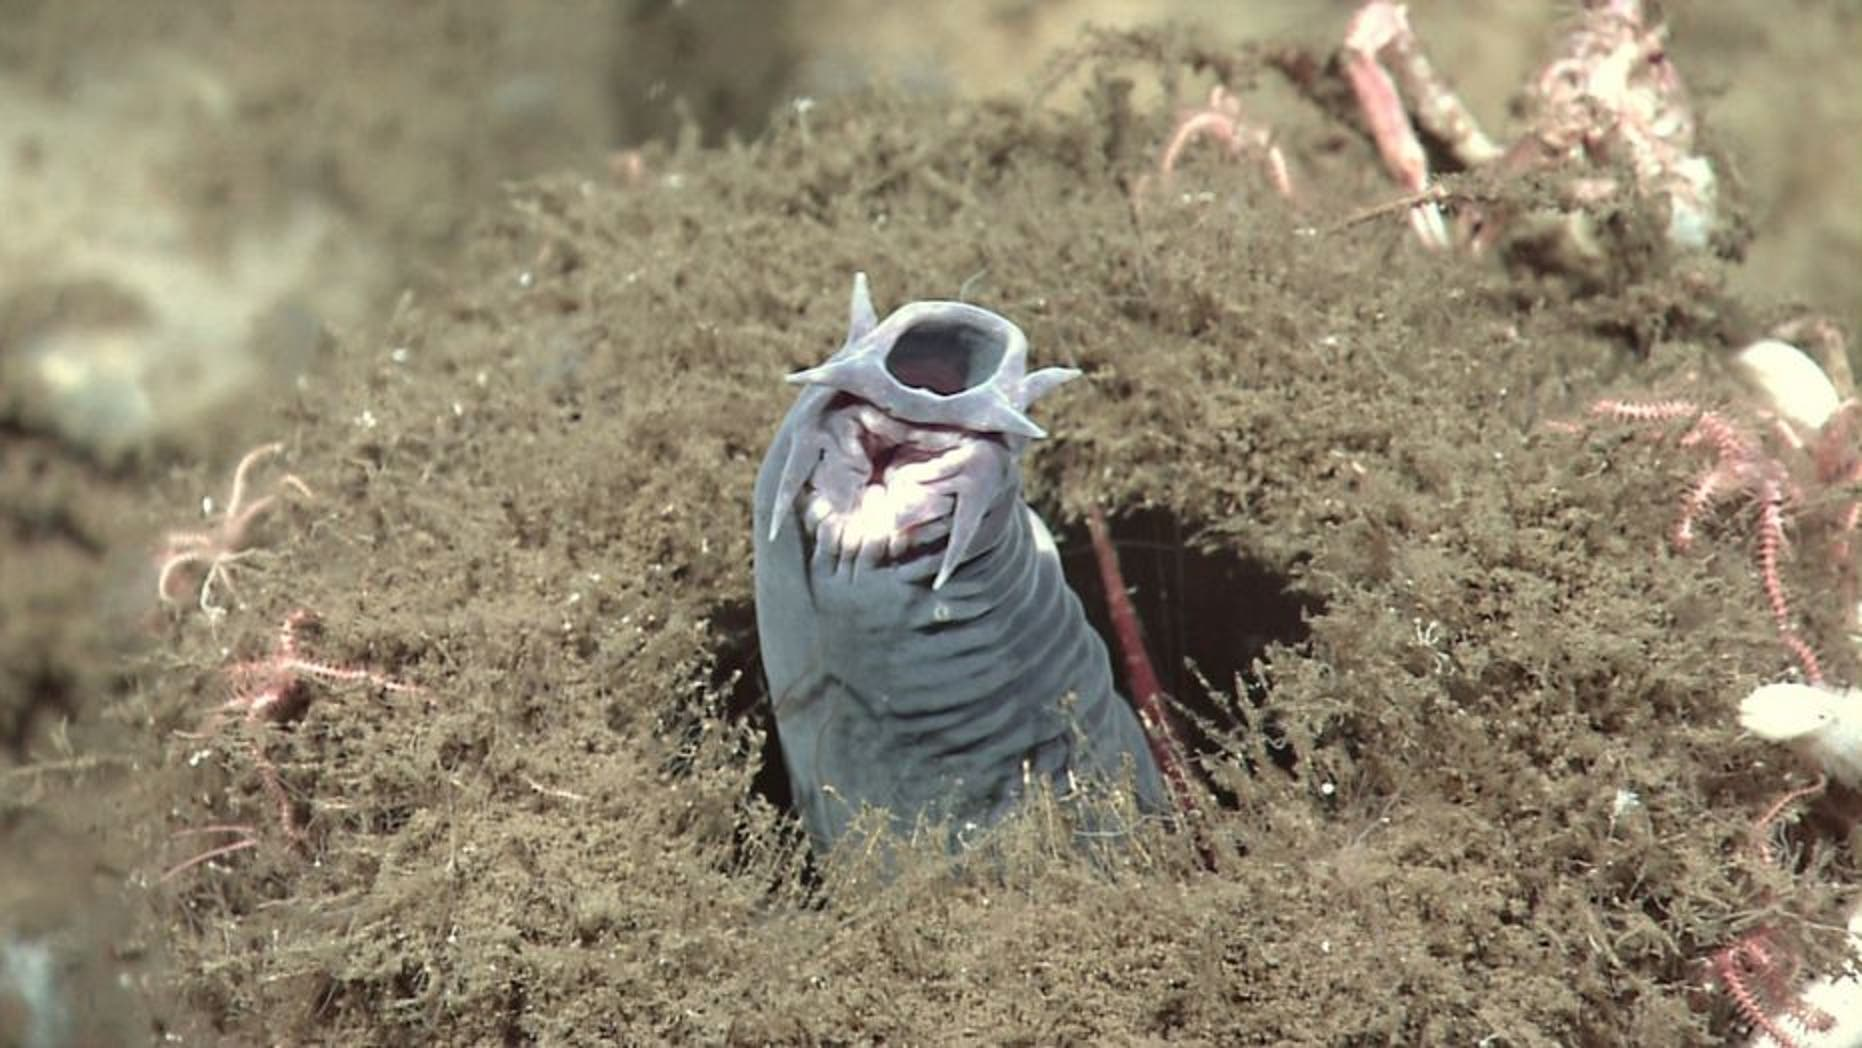 A hagfish protruding from a sponge.